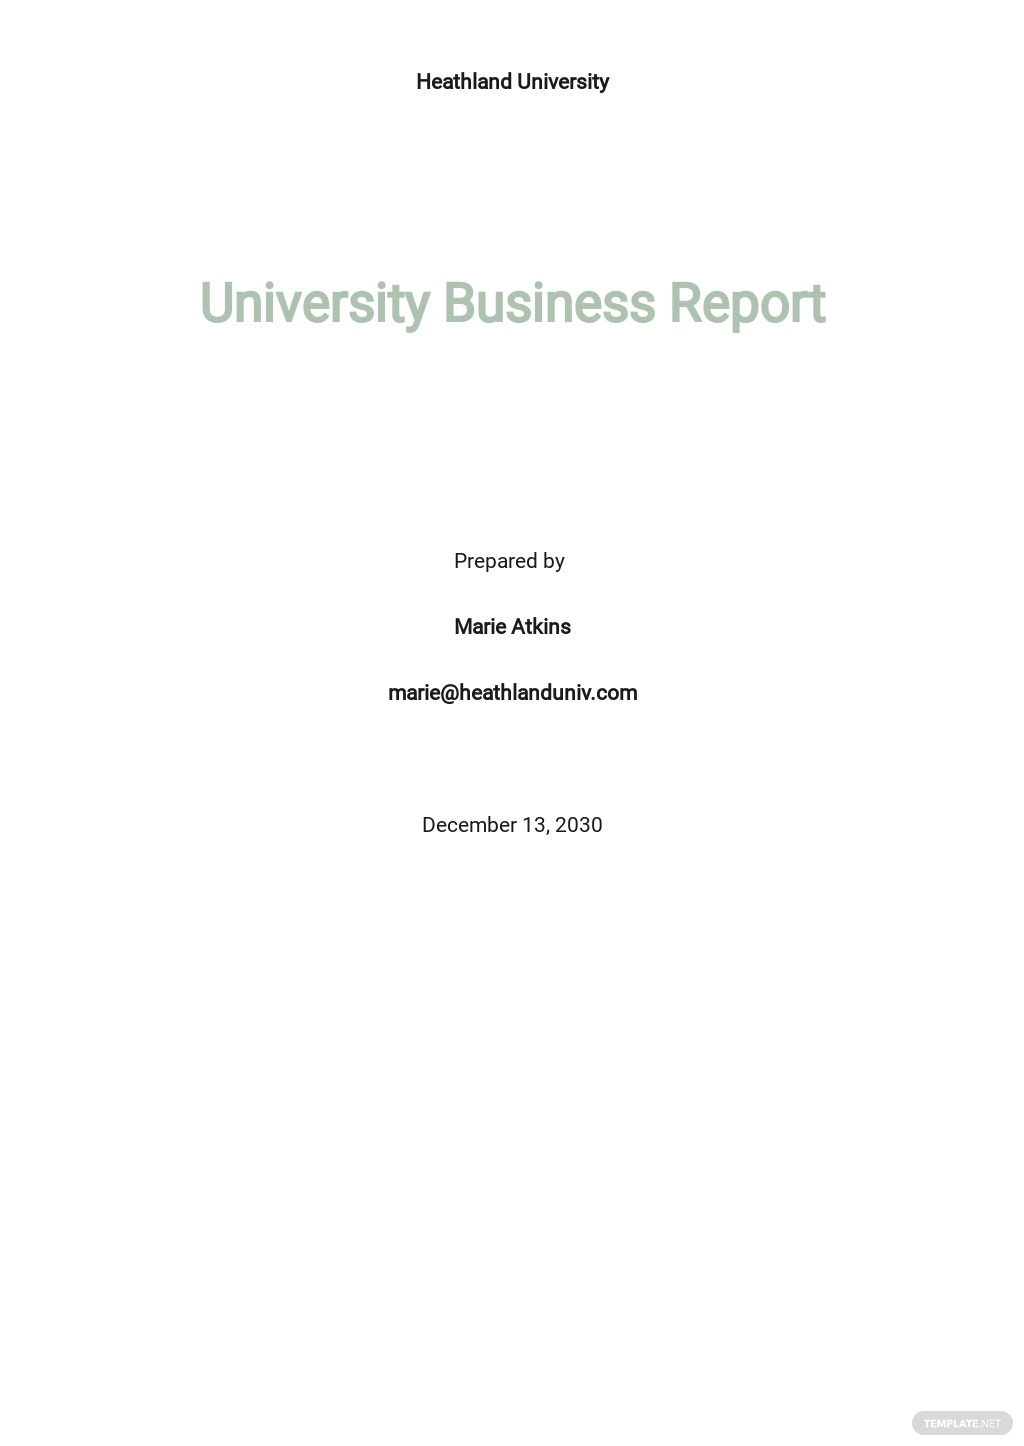 University Business Report Template